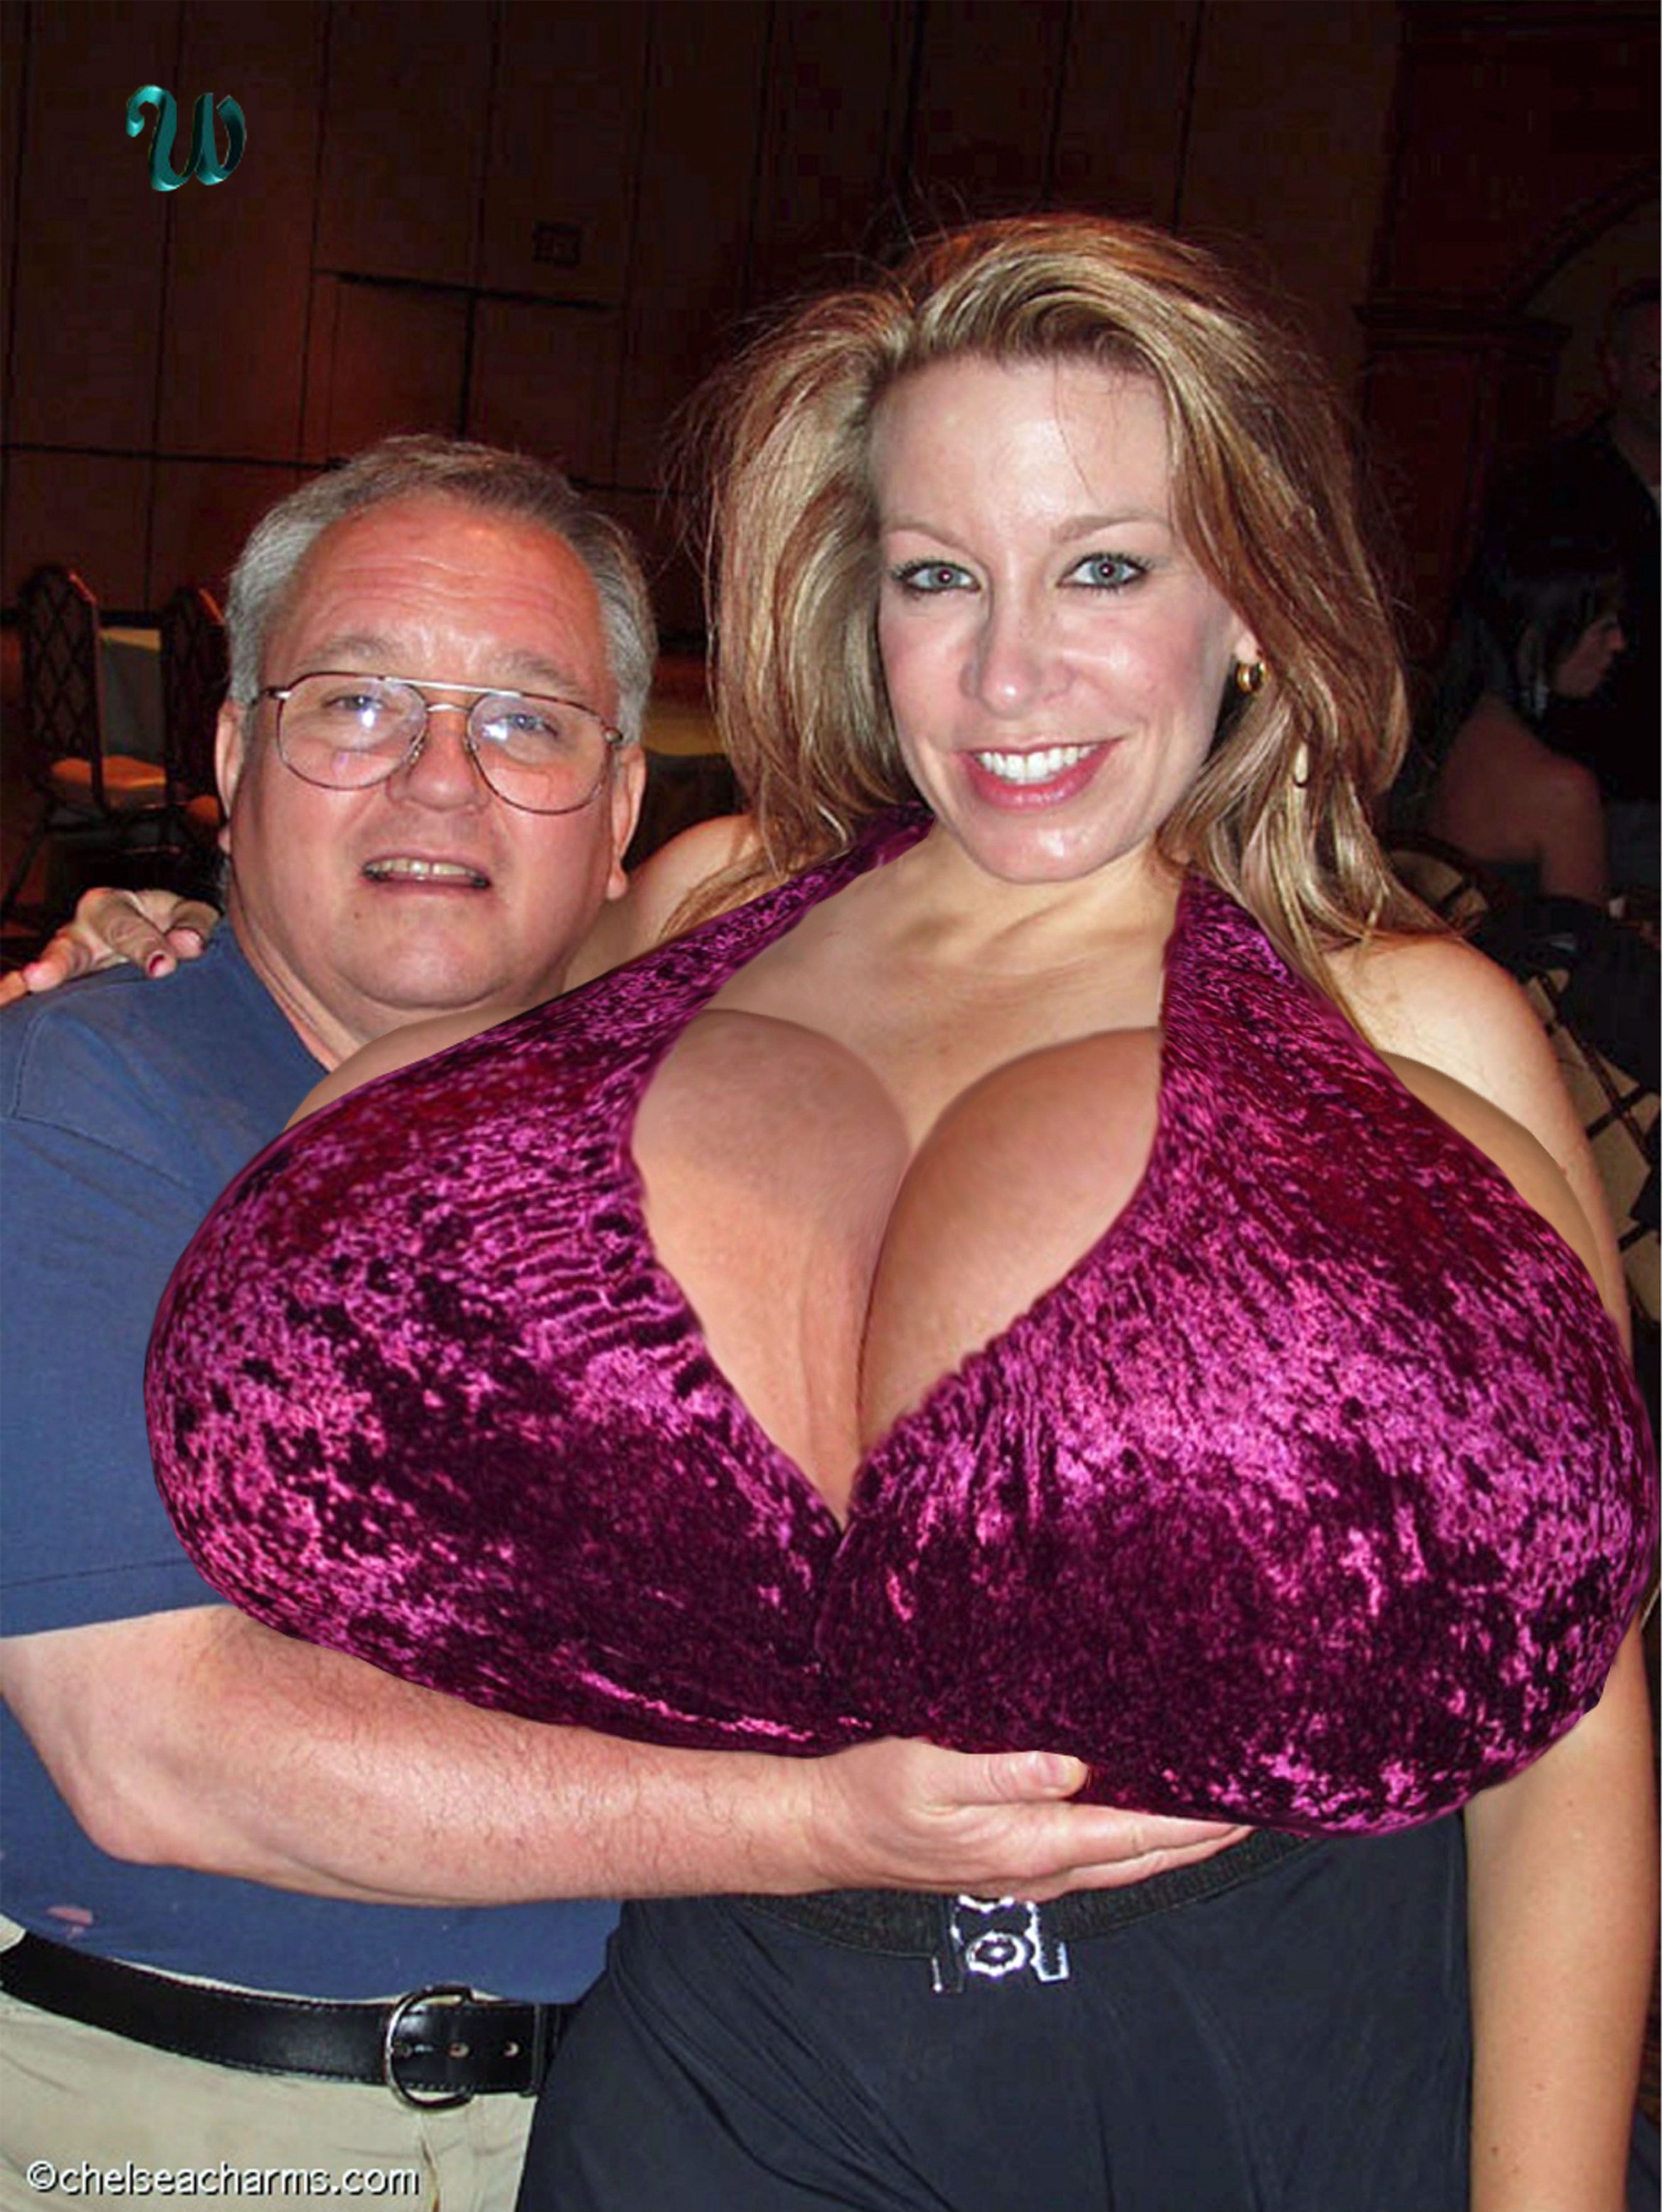 Chelsea Charms Images photo 10